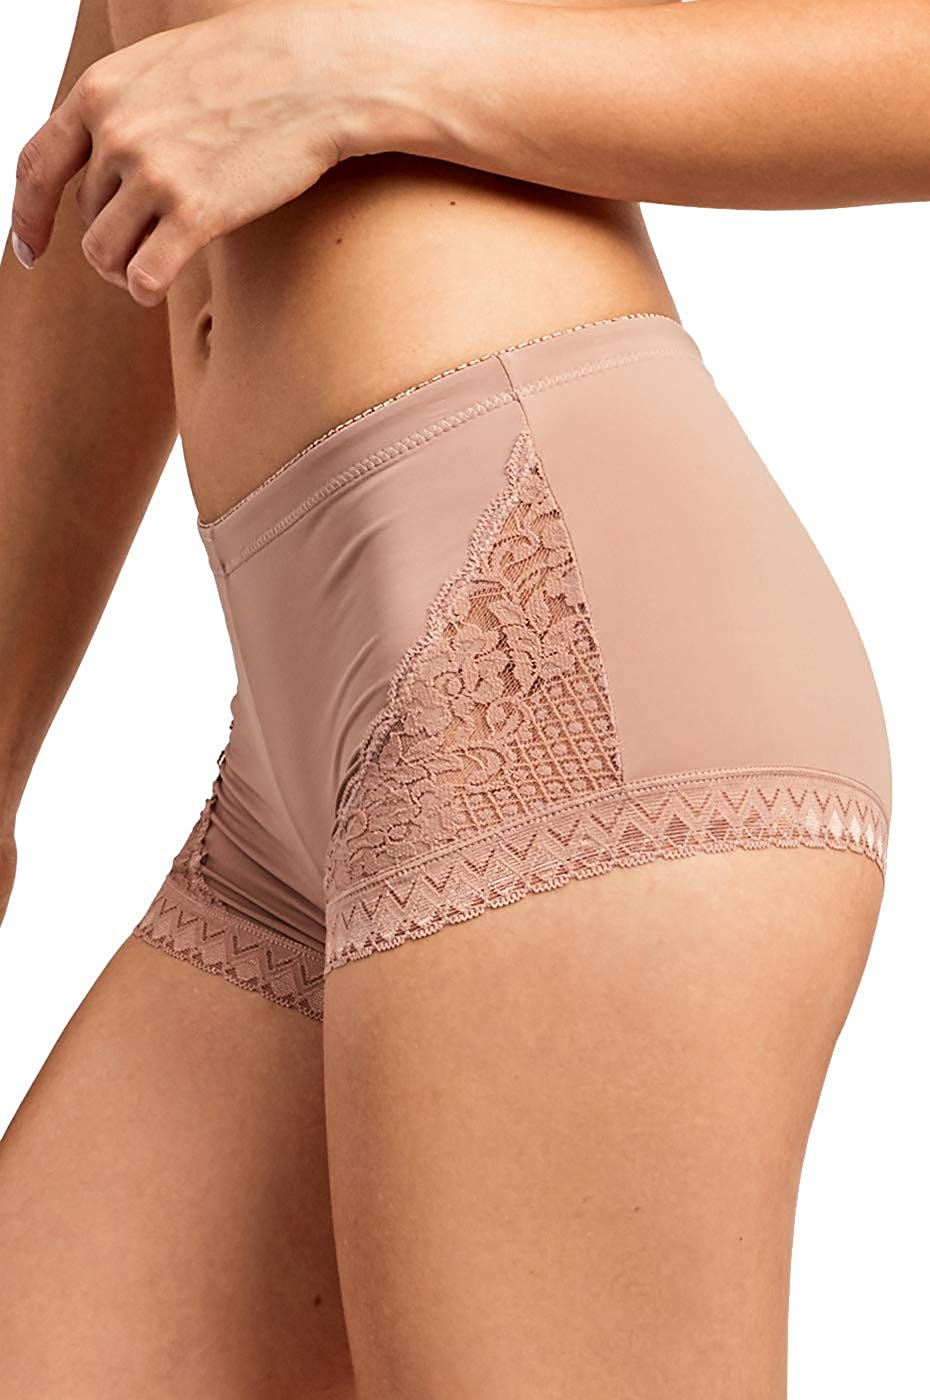 Pack of 6 or 2 Womens Premium Lace Side Trim Boyshort Panty